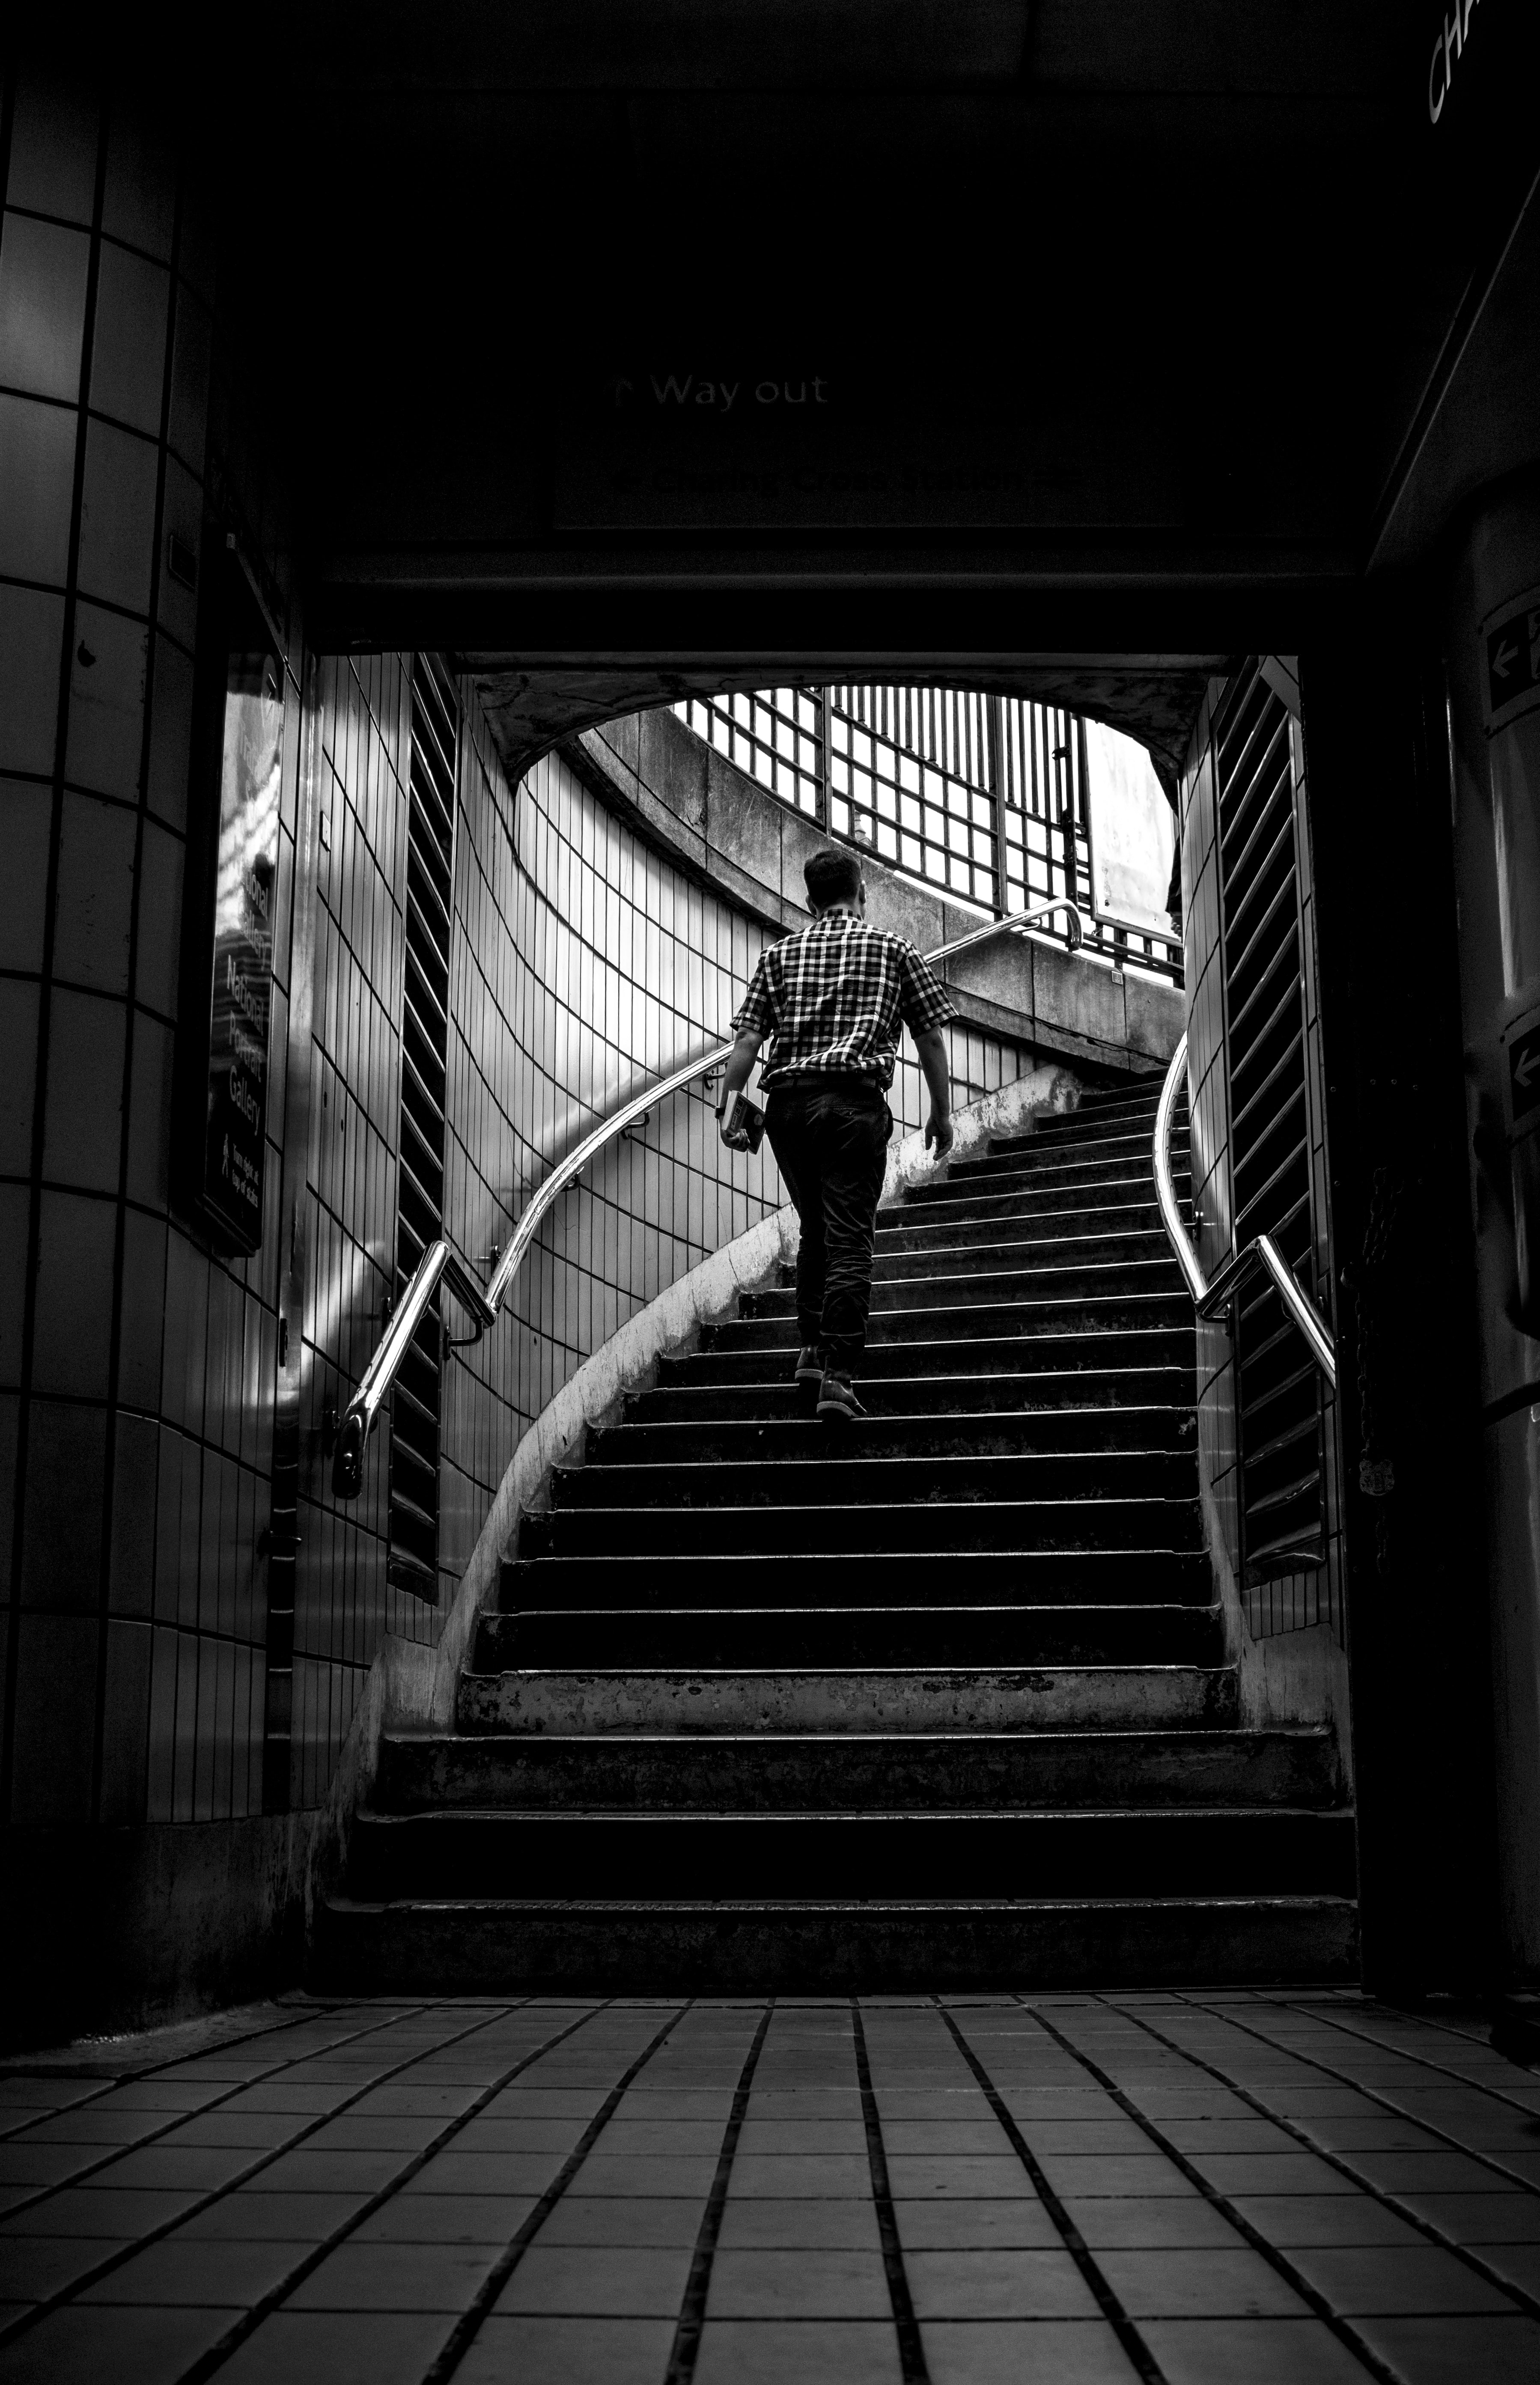 A man walks up the stairs of a subway in London.